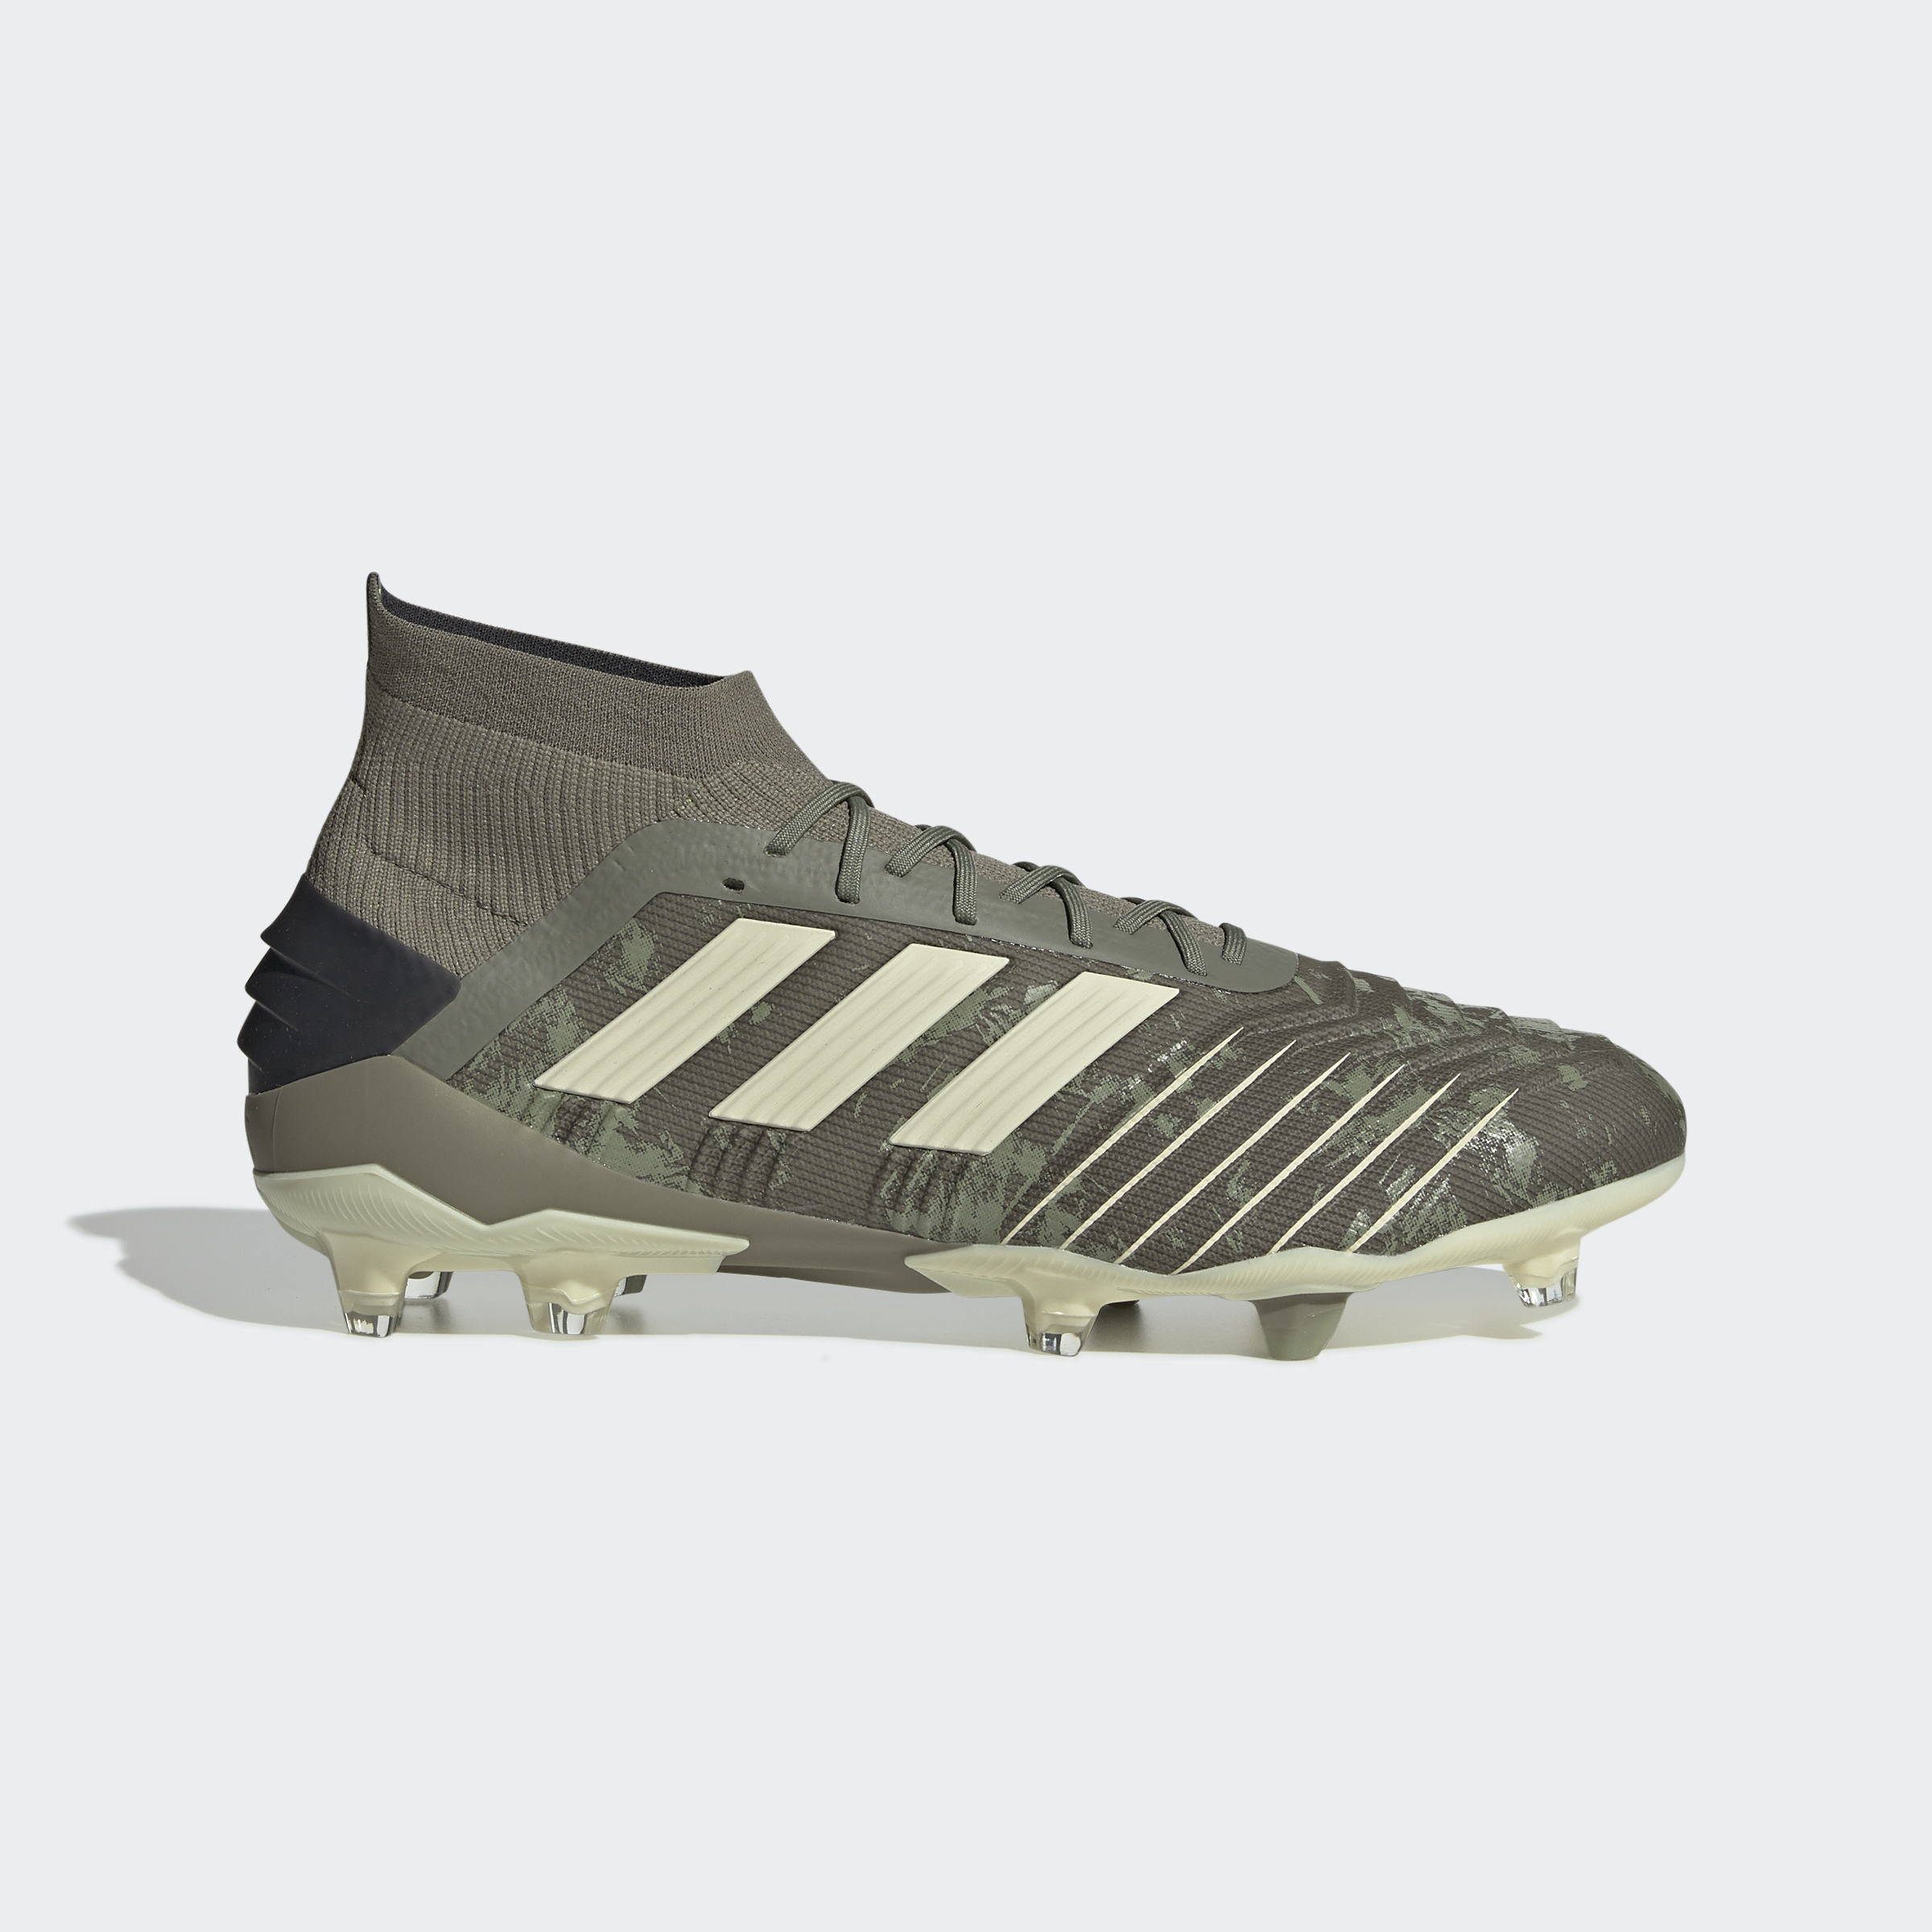 adidas-Predator-19-1-Firm-Ground-Cleats-Football-Boots thumbnail 12